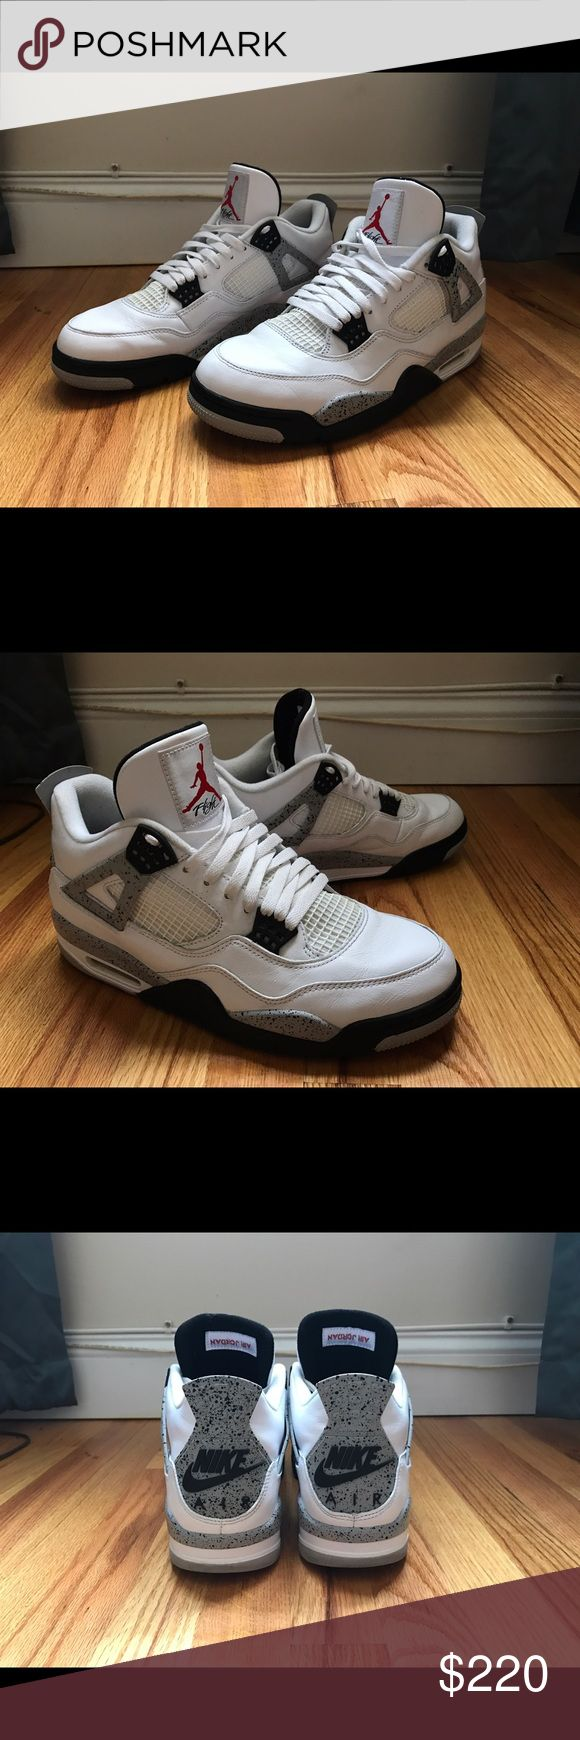 Nike Retro Jordan Cement 4's From the most recent release. They were previously worn about 3 times. Still in excellent condition. Comes with a box but not the original. Nike Shoes Sneakers